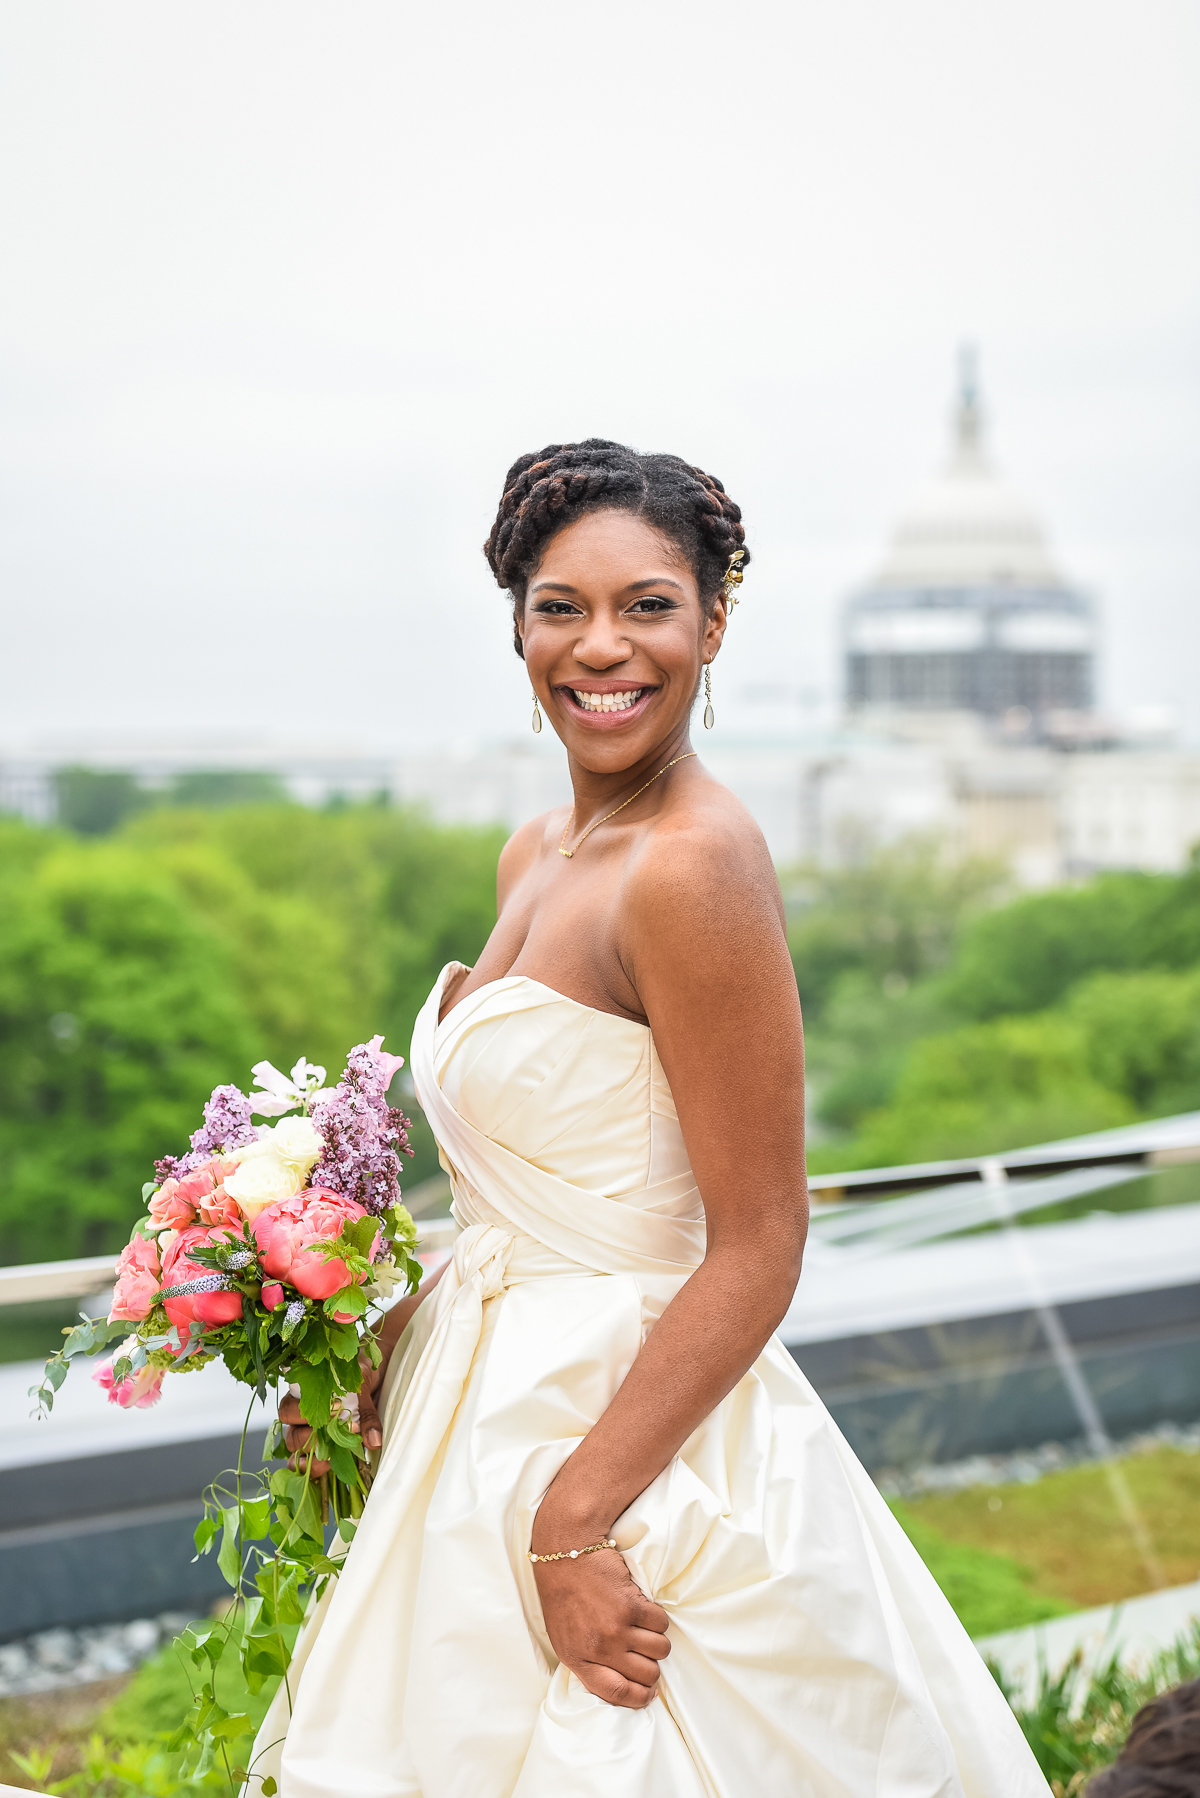 bridal_bellhop_wedding_event_bridal_portraits_4_27_16-28.jpg